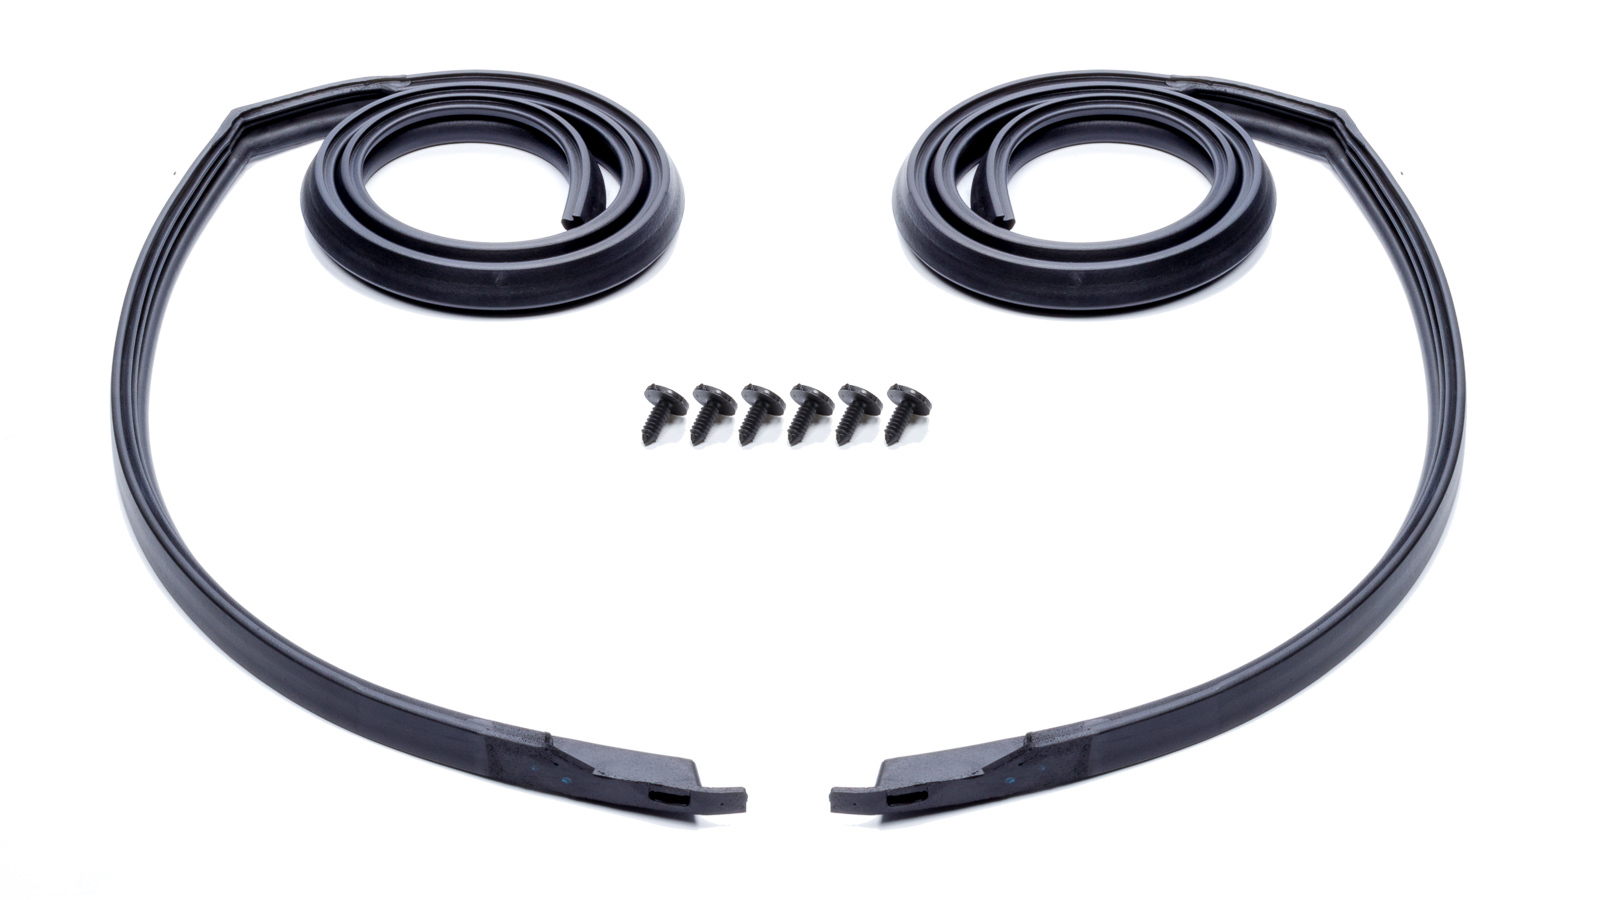 Soff Seal 5009 Weatherstrip Seal, Roof Rail, Molded Ends, Rubber, Black, Hard Top, 2 Door, GM A-Body / Y-Body 1966-67, Pair